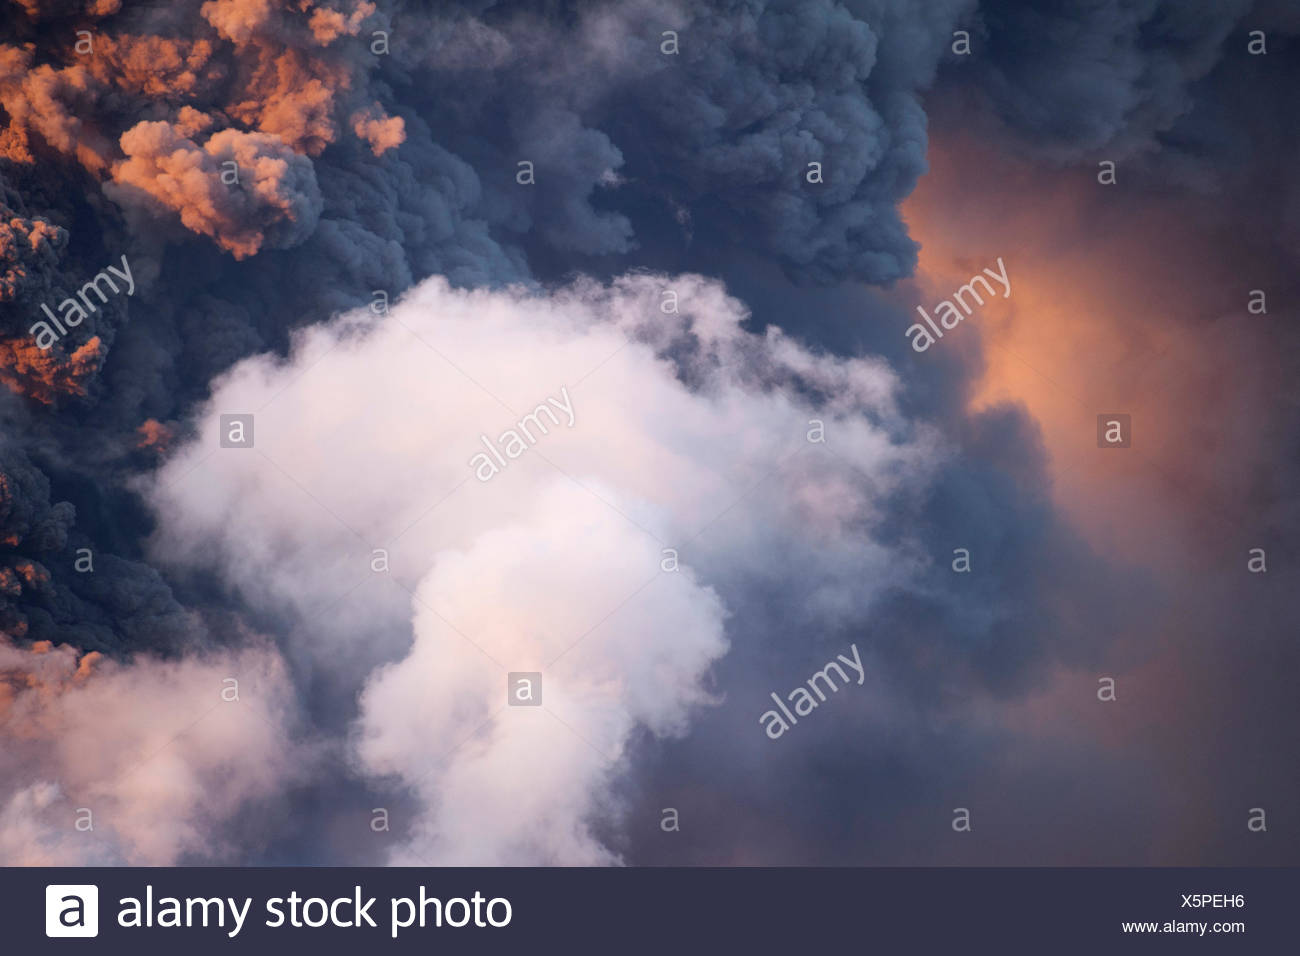 Detail of the ash clouds of Eyjafjallajoekull Volcano, Iceland, Europe - Stock Image